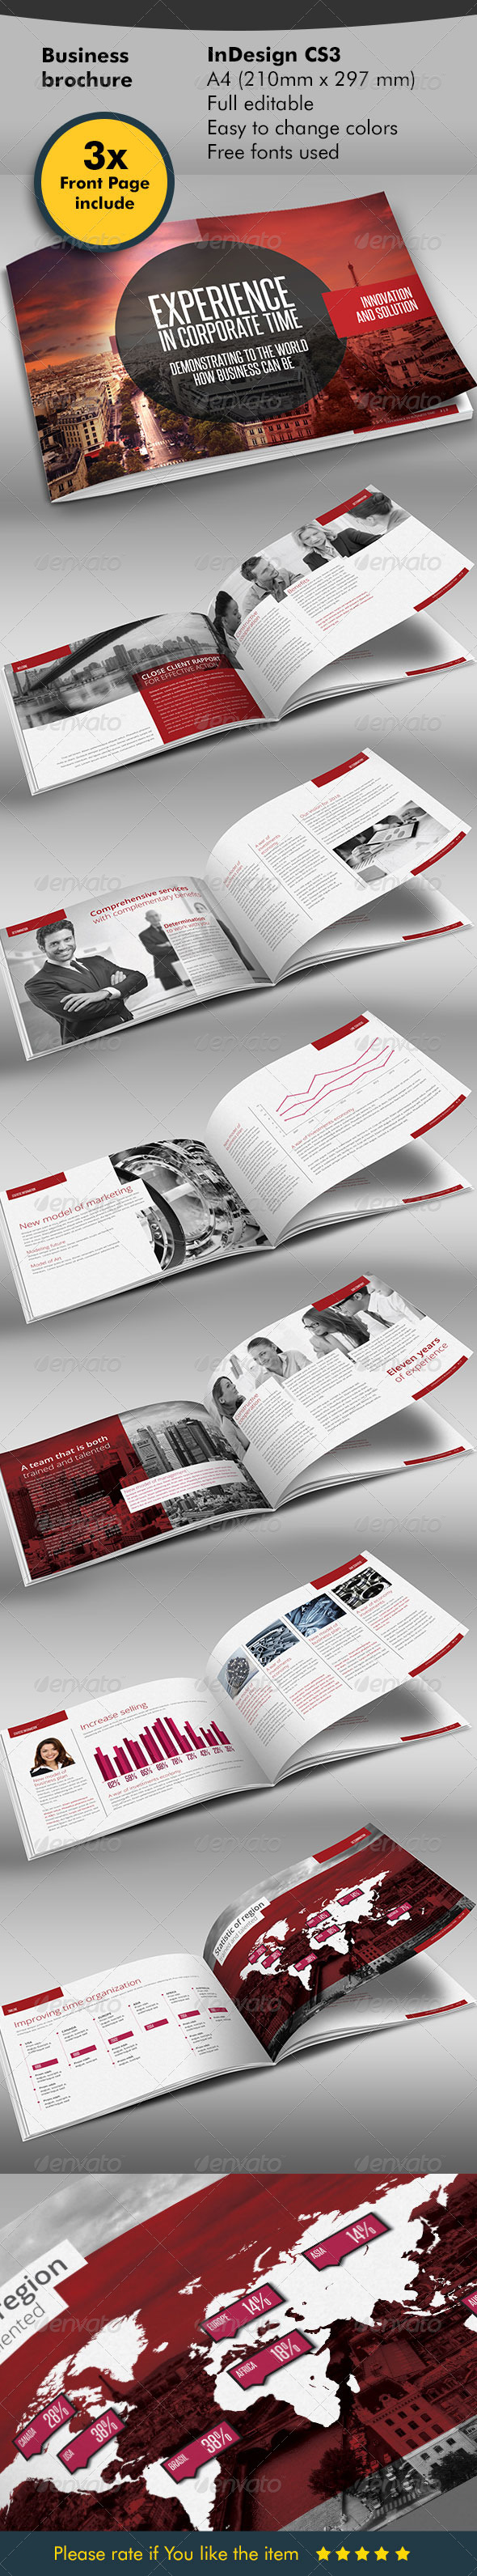 Red Black Design Brochure - Corporate Brochures